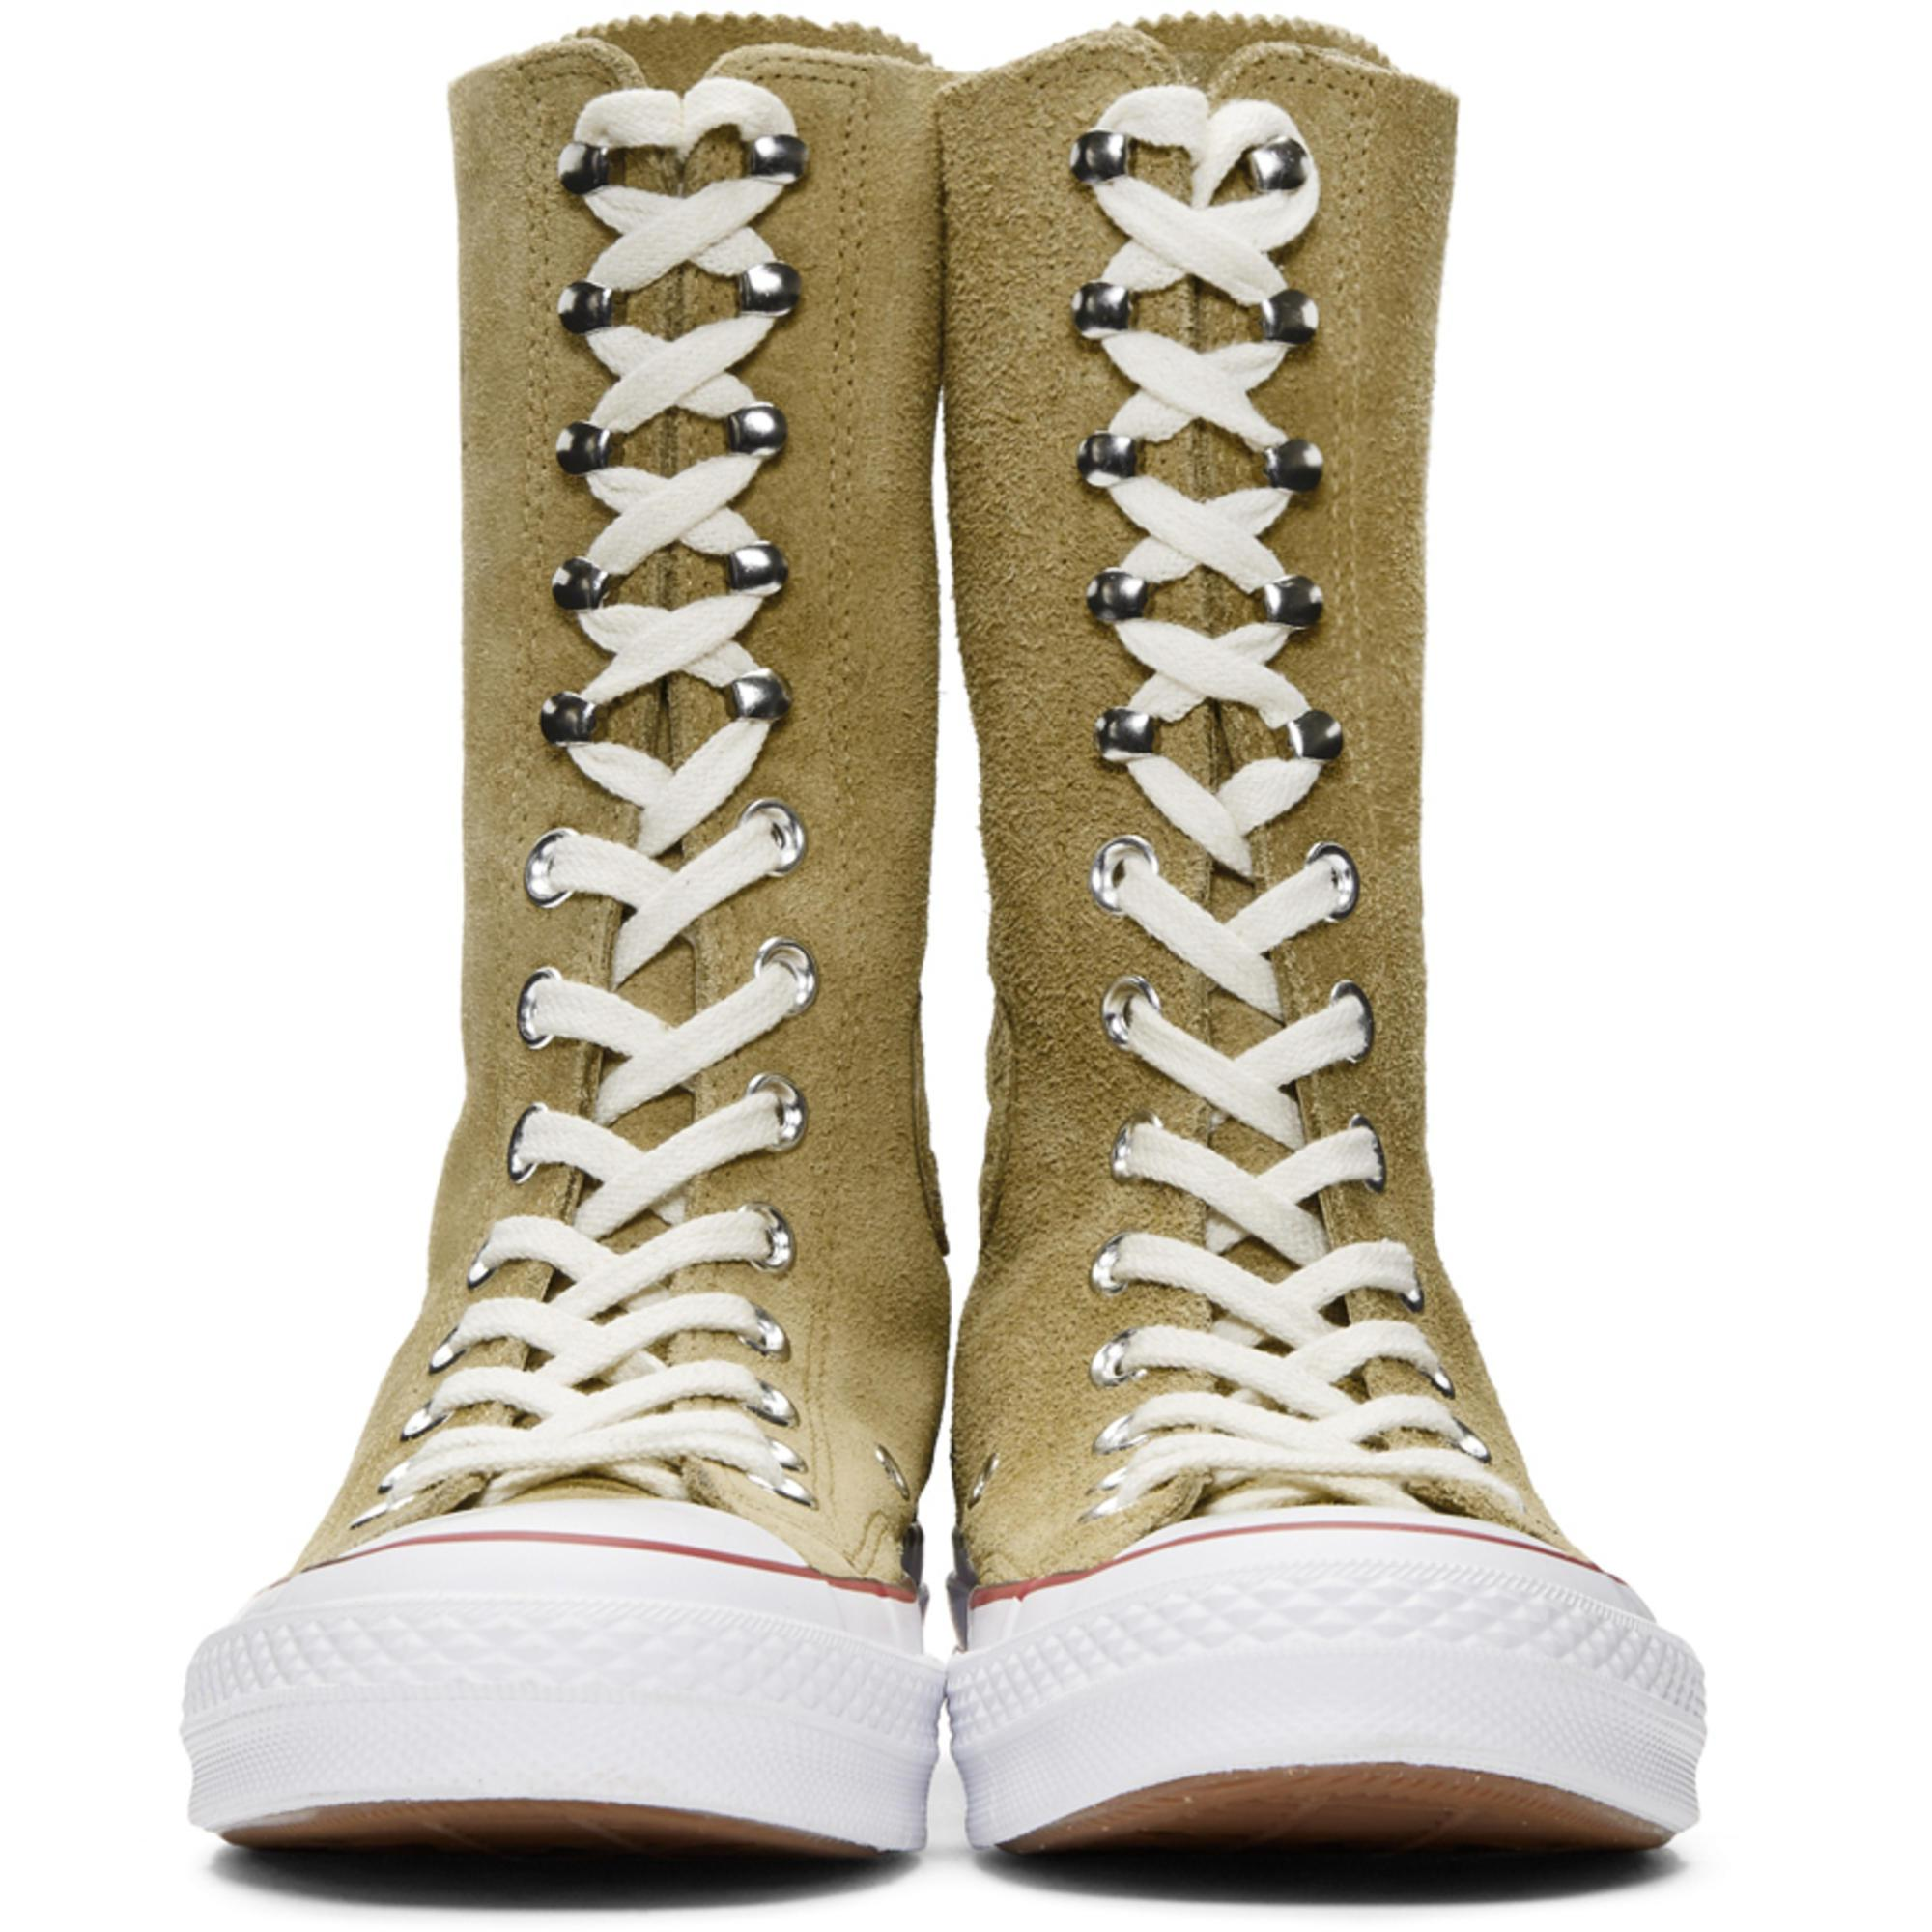 19839963a41 JW Anderson Tan Converse Edition Suede Chuck Taylor High-top ...